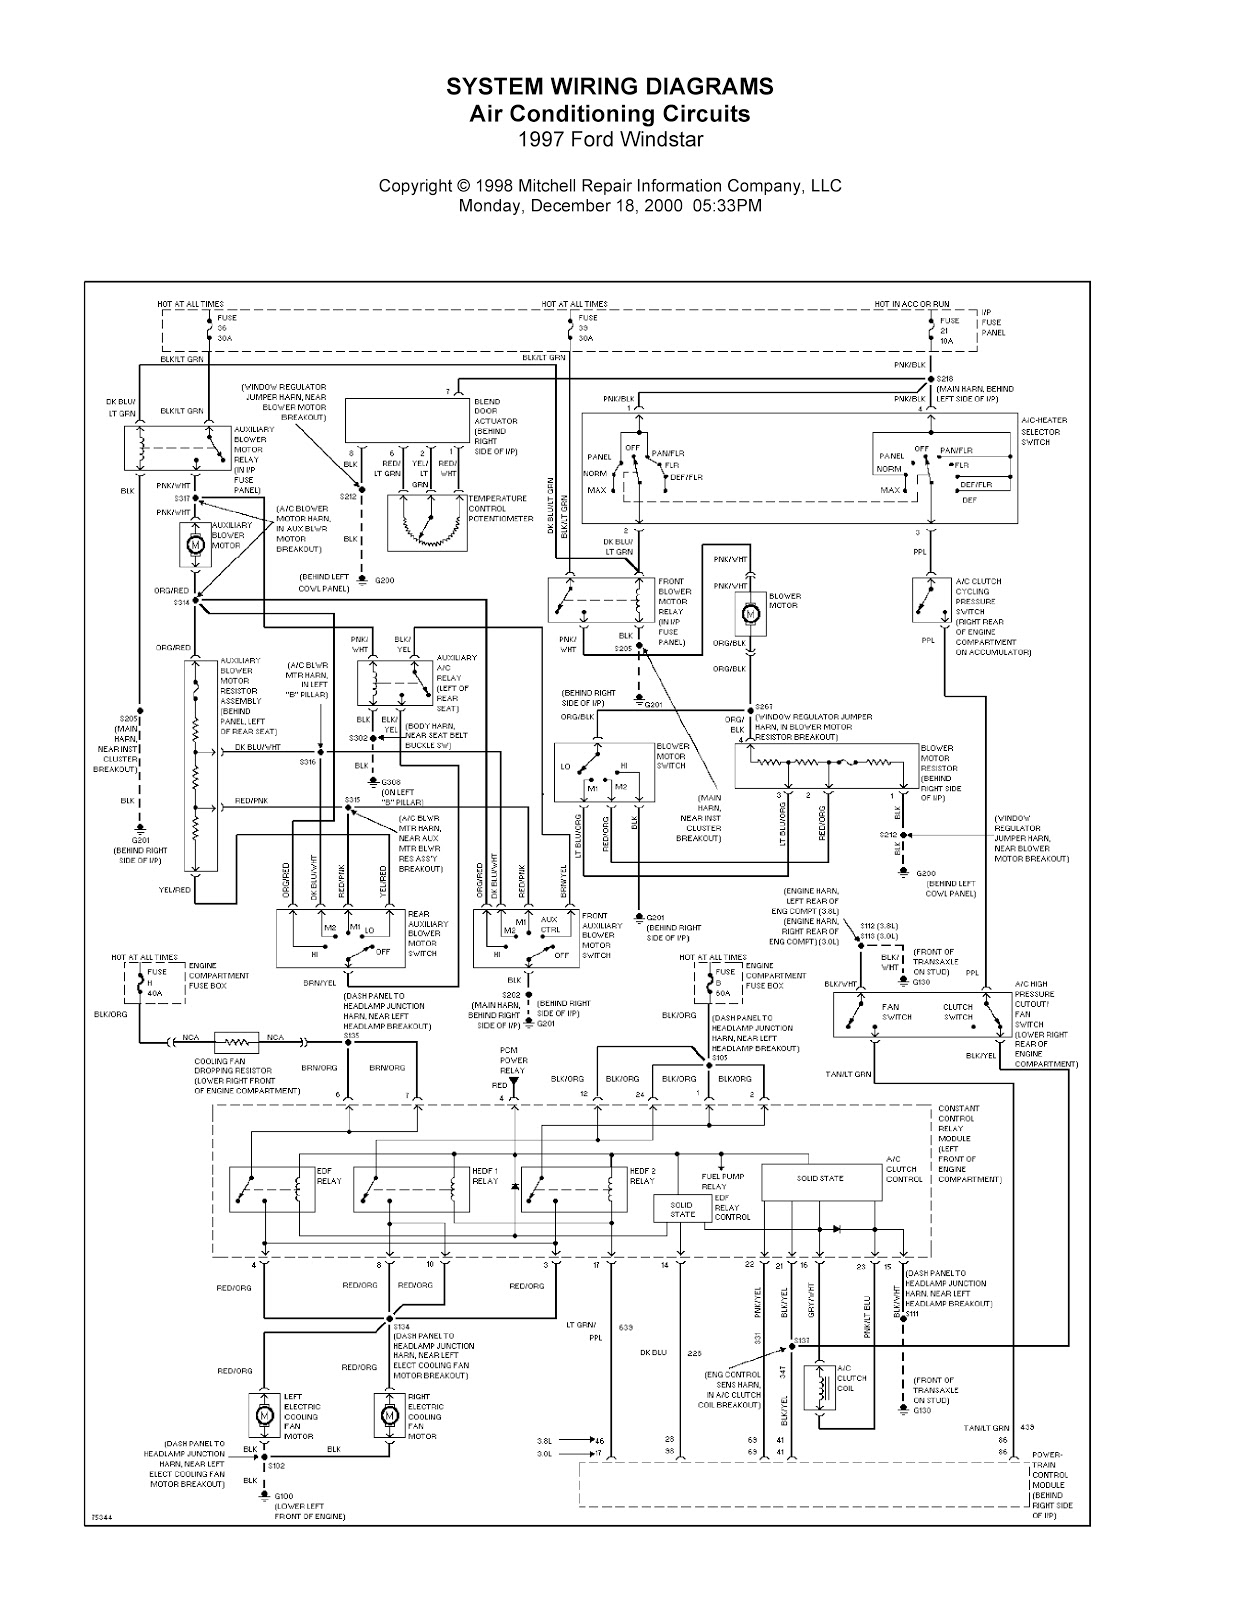 1997 ford windstar complete system wiring diagrams wiring 1997 ford windstar complete system wiring diagrams wiring diagrams center pooptronica